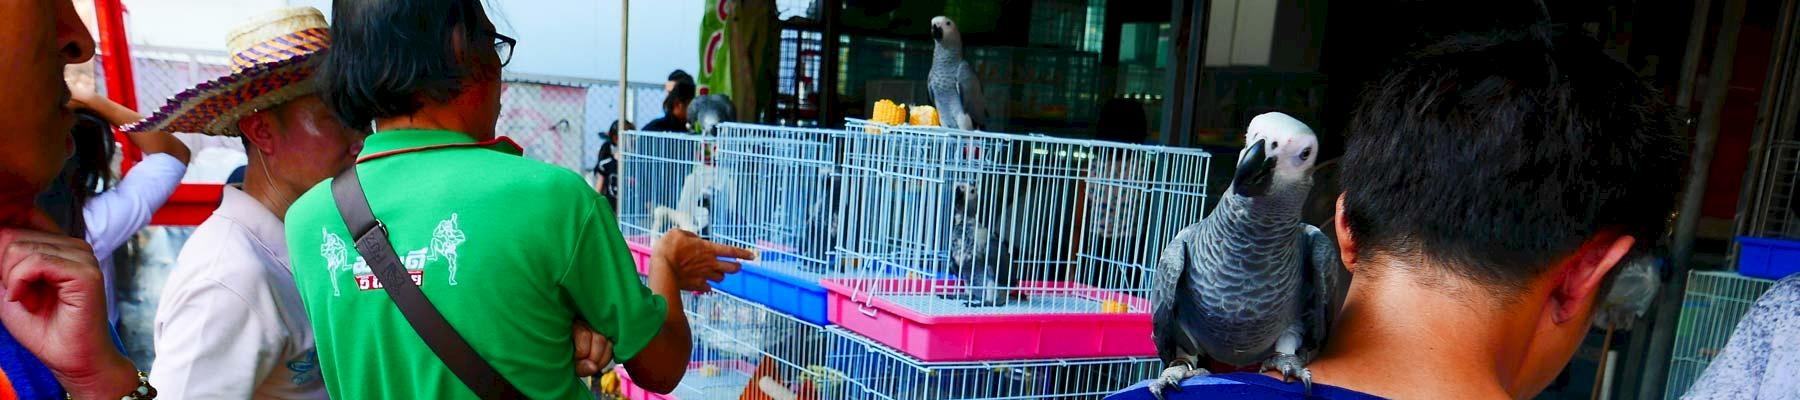 Visitors inspect birds for sale - many wild-sourced - at Chatuchak market, Thailand © TRAFFIC